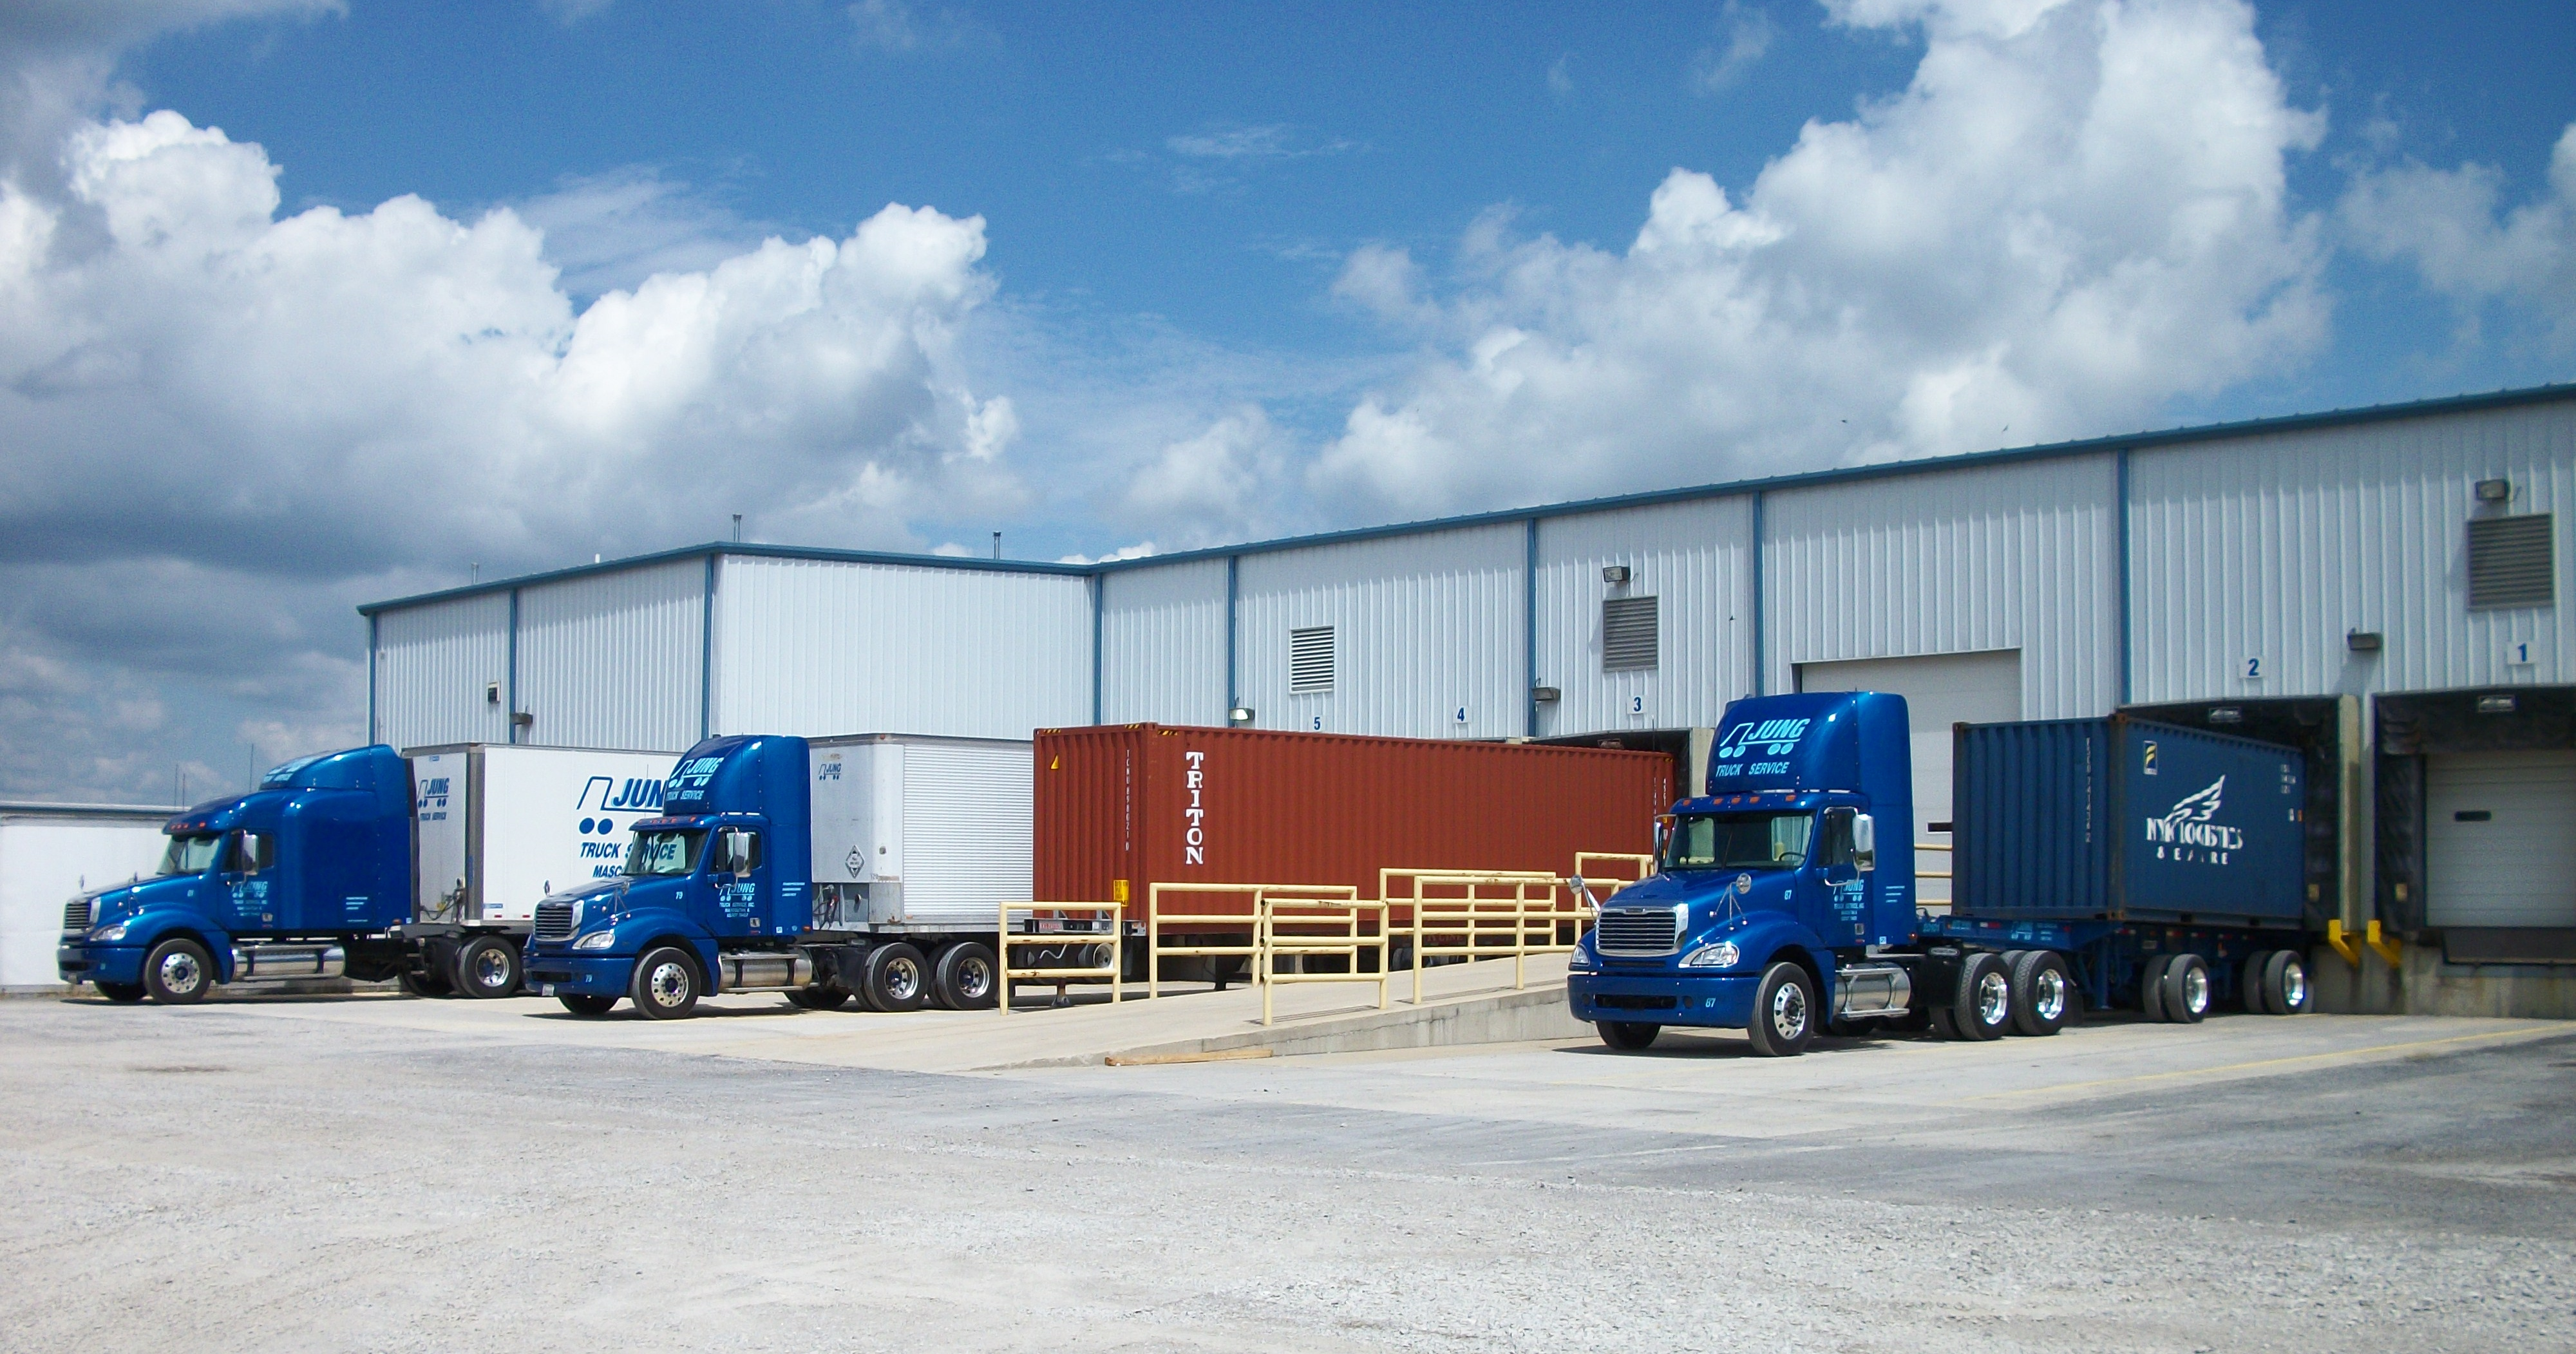 Warehousing Jung Trucking Logistics And Warehousing Services